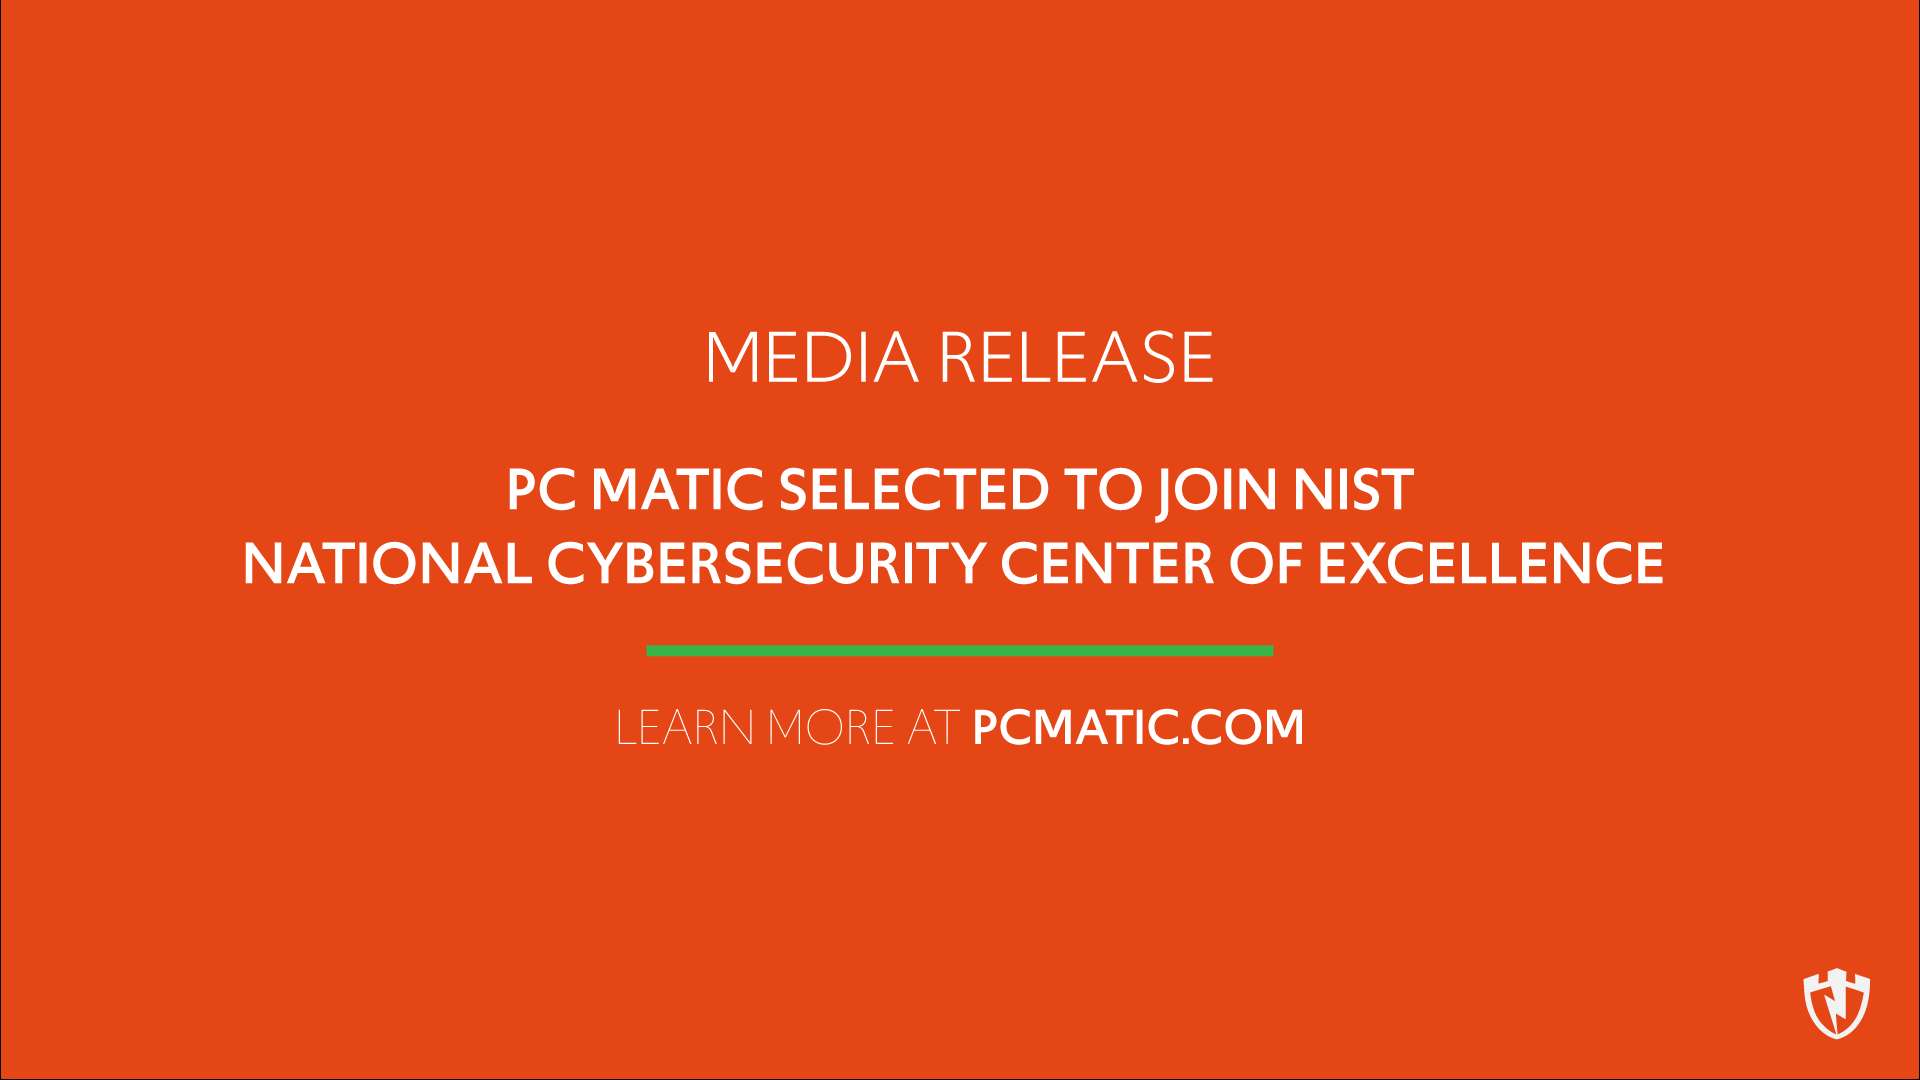 PC Matic joins with NIST's NCCoE's Cybersecurity Center to help Business & Government Agencies combat cyber crime.